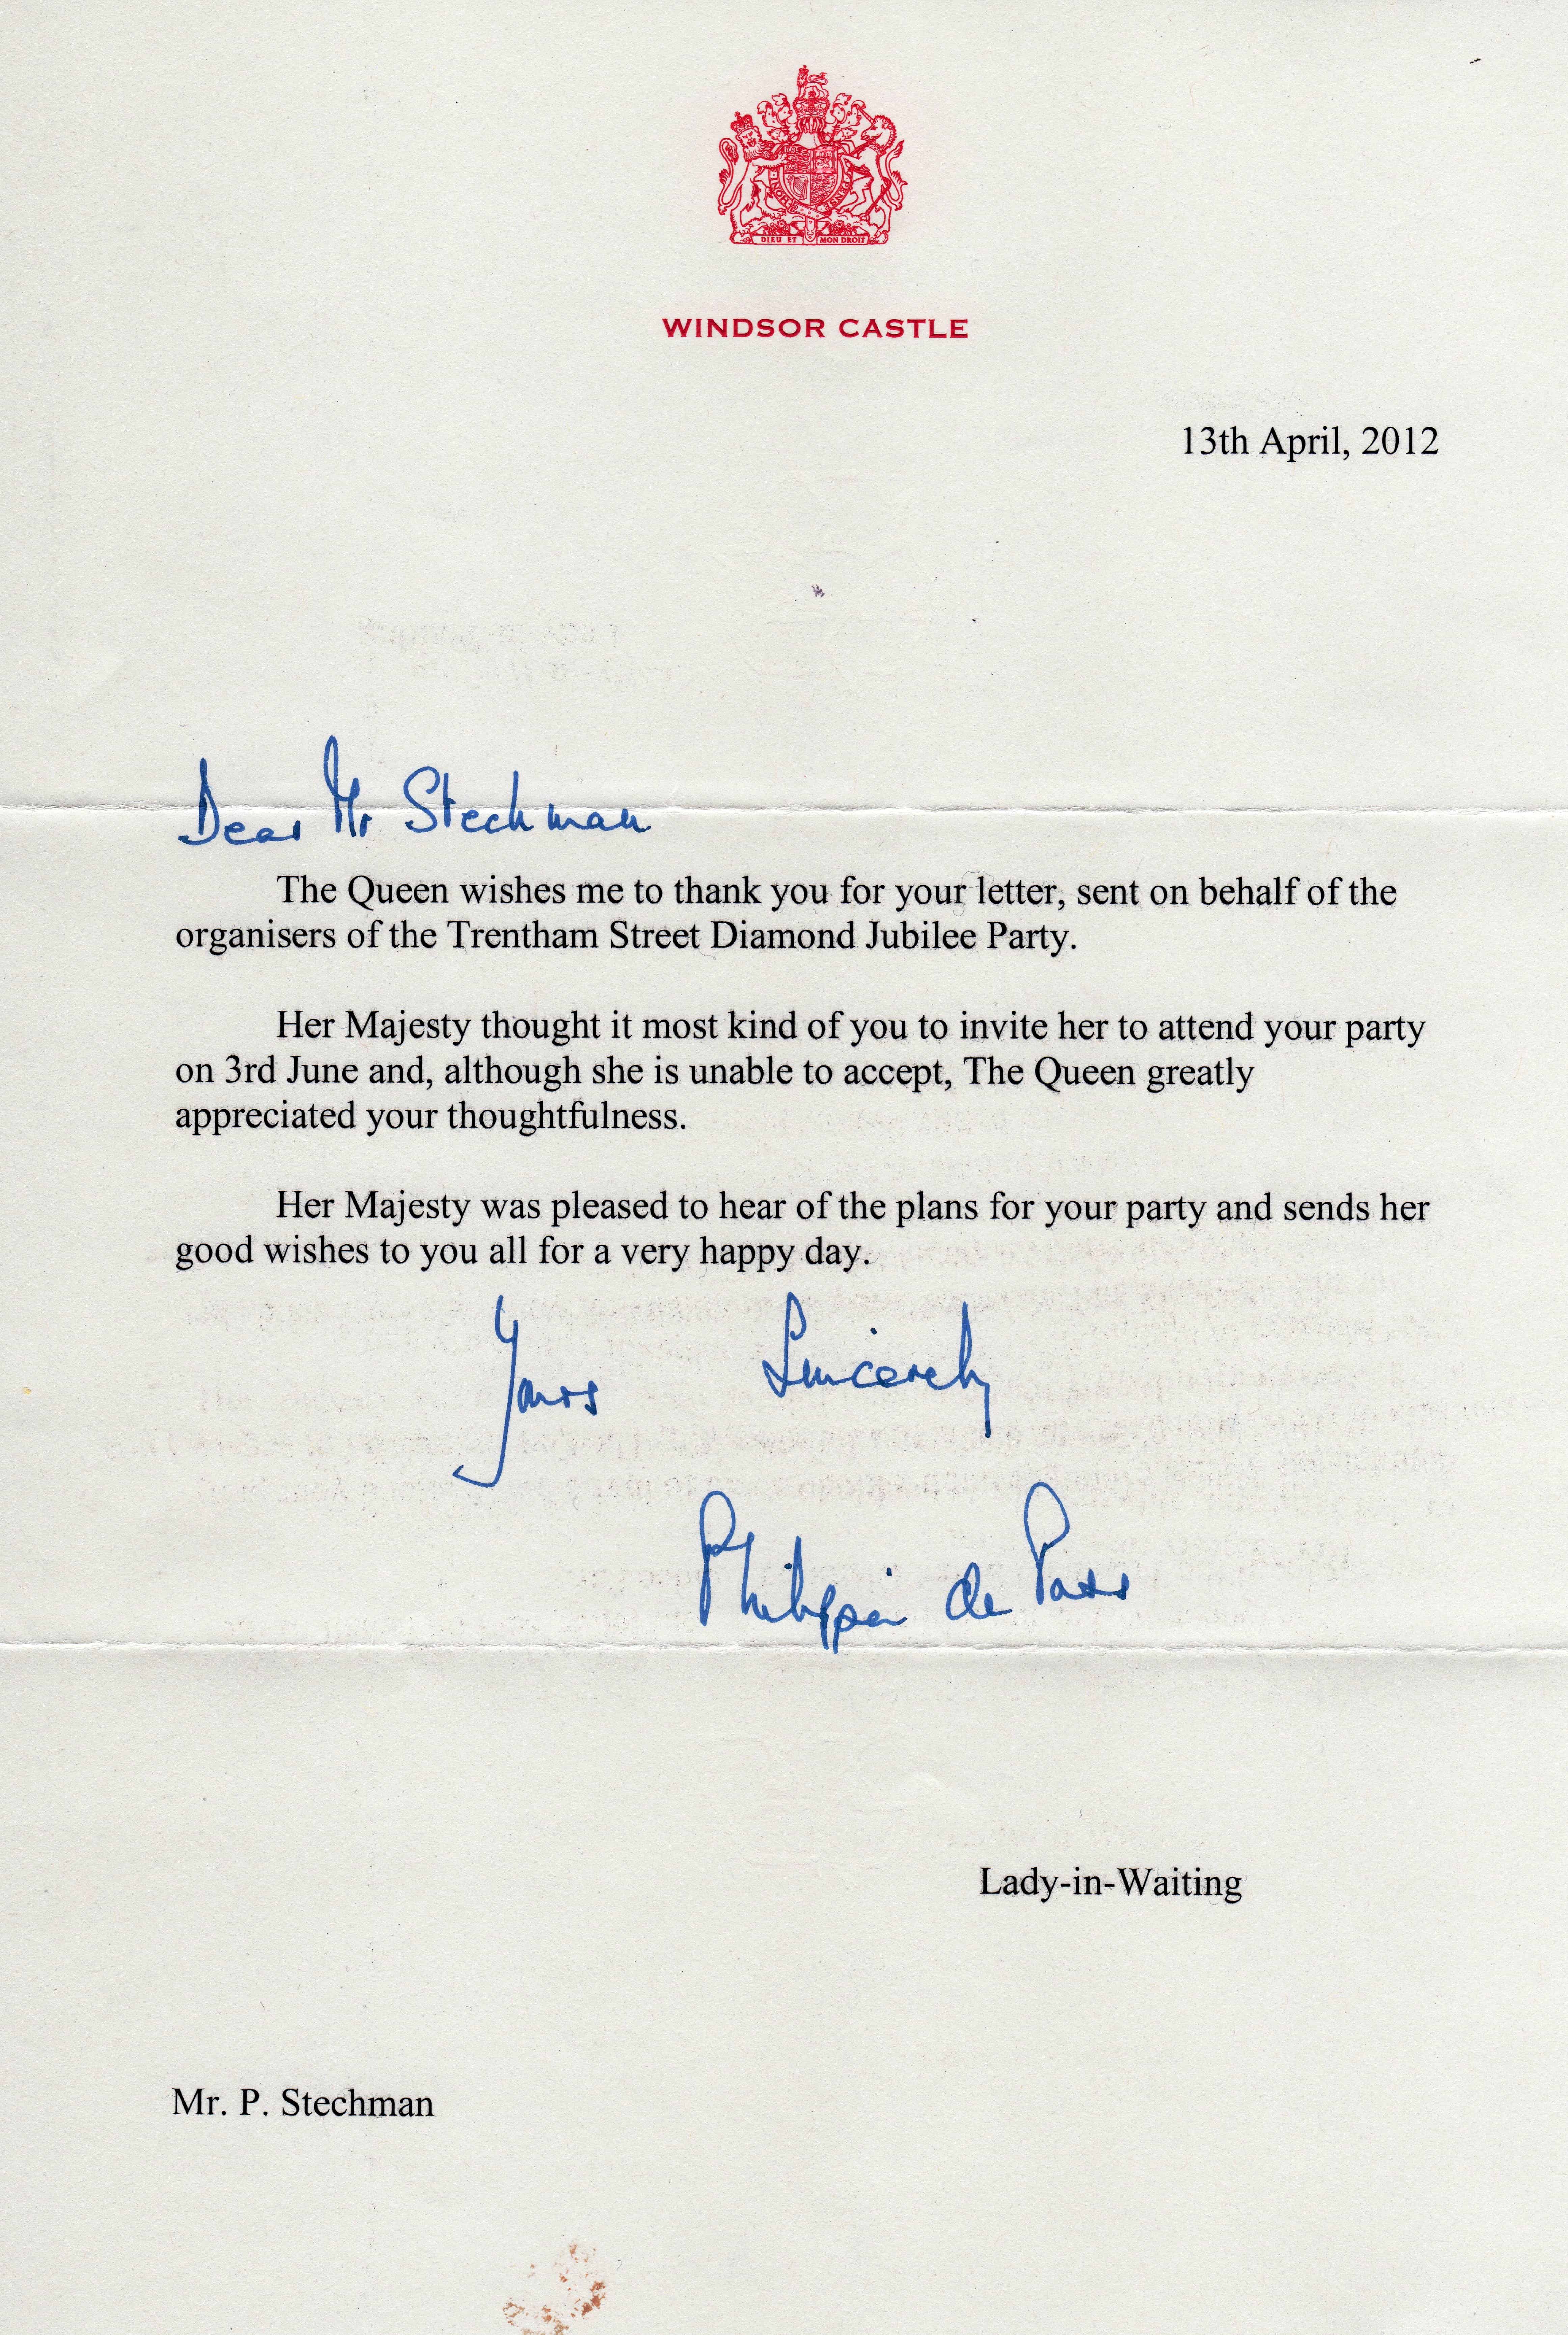 Wosm atas scout home invitation letter to the queen gallery gerald stopboris Choice Image